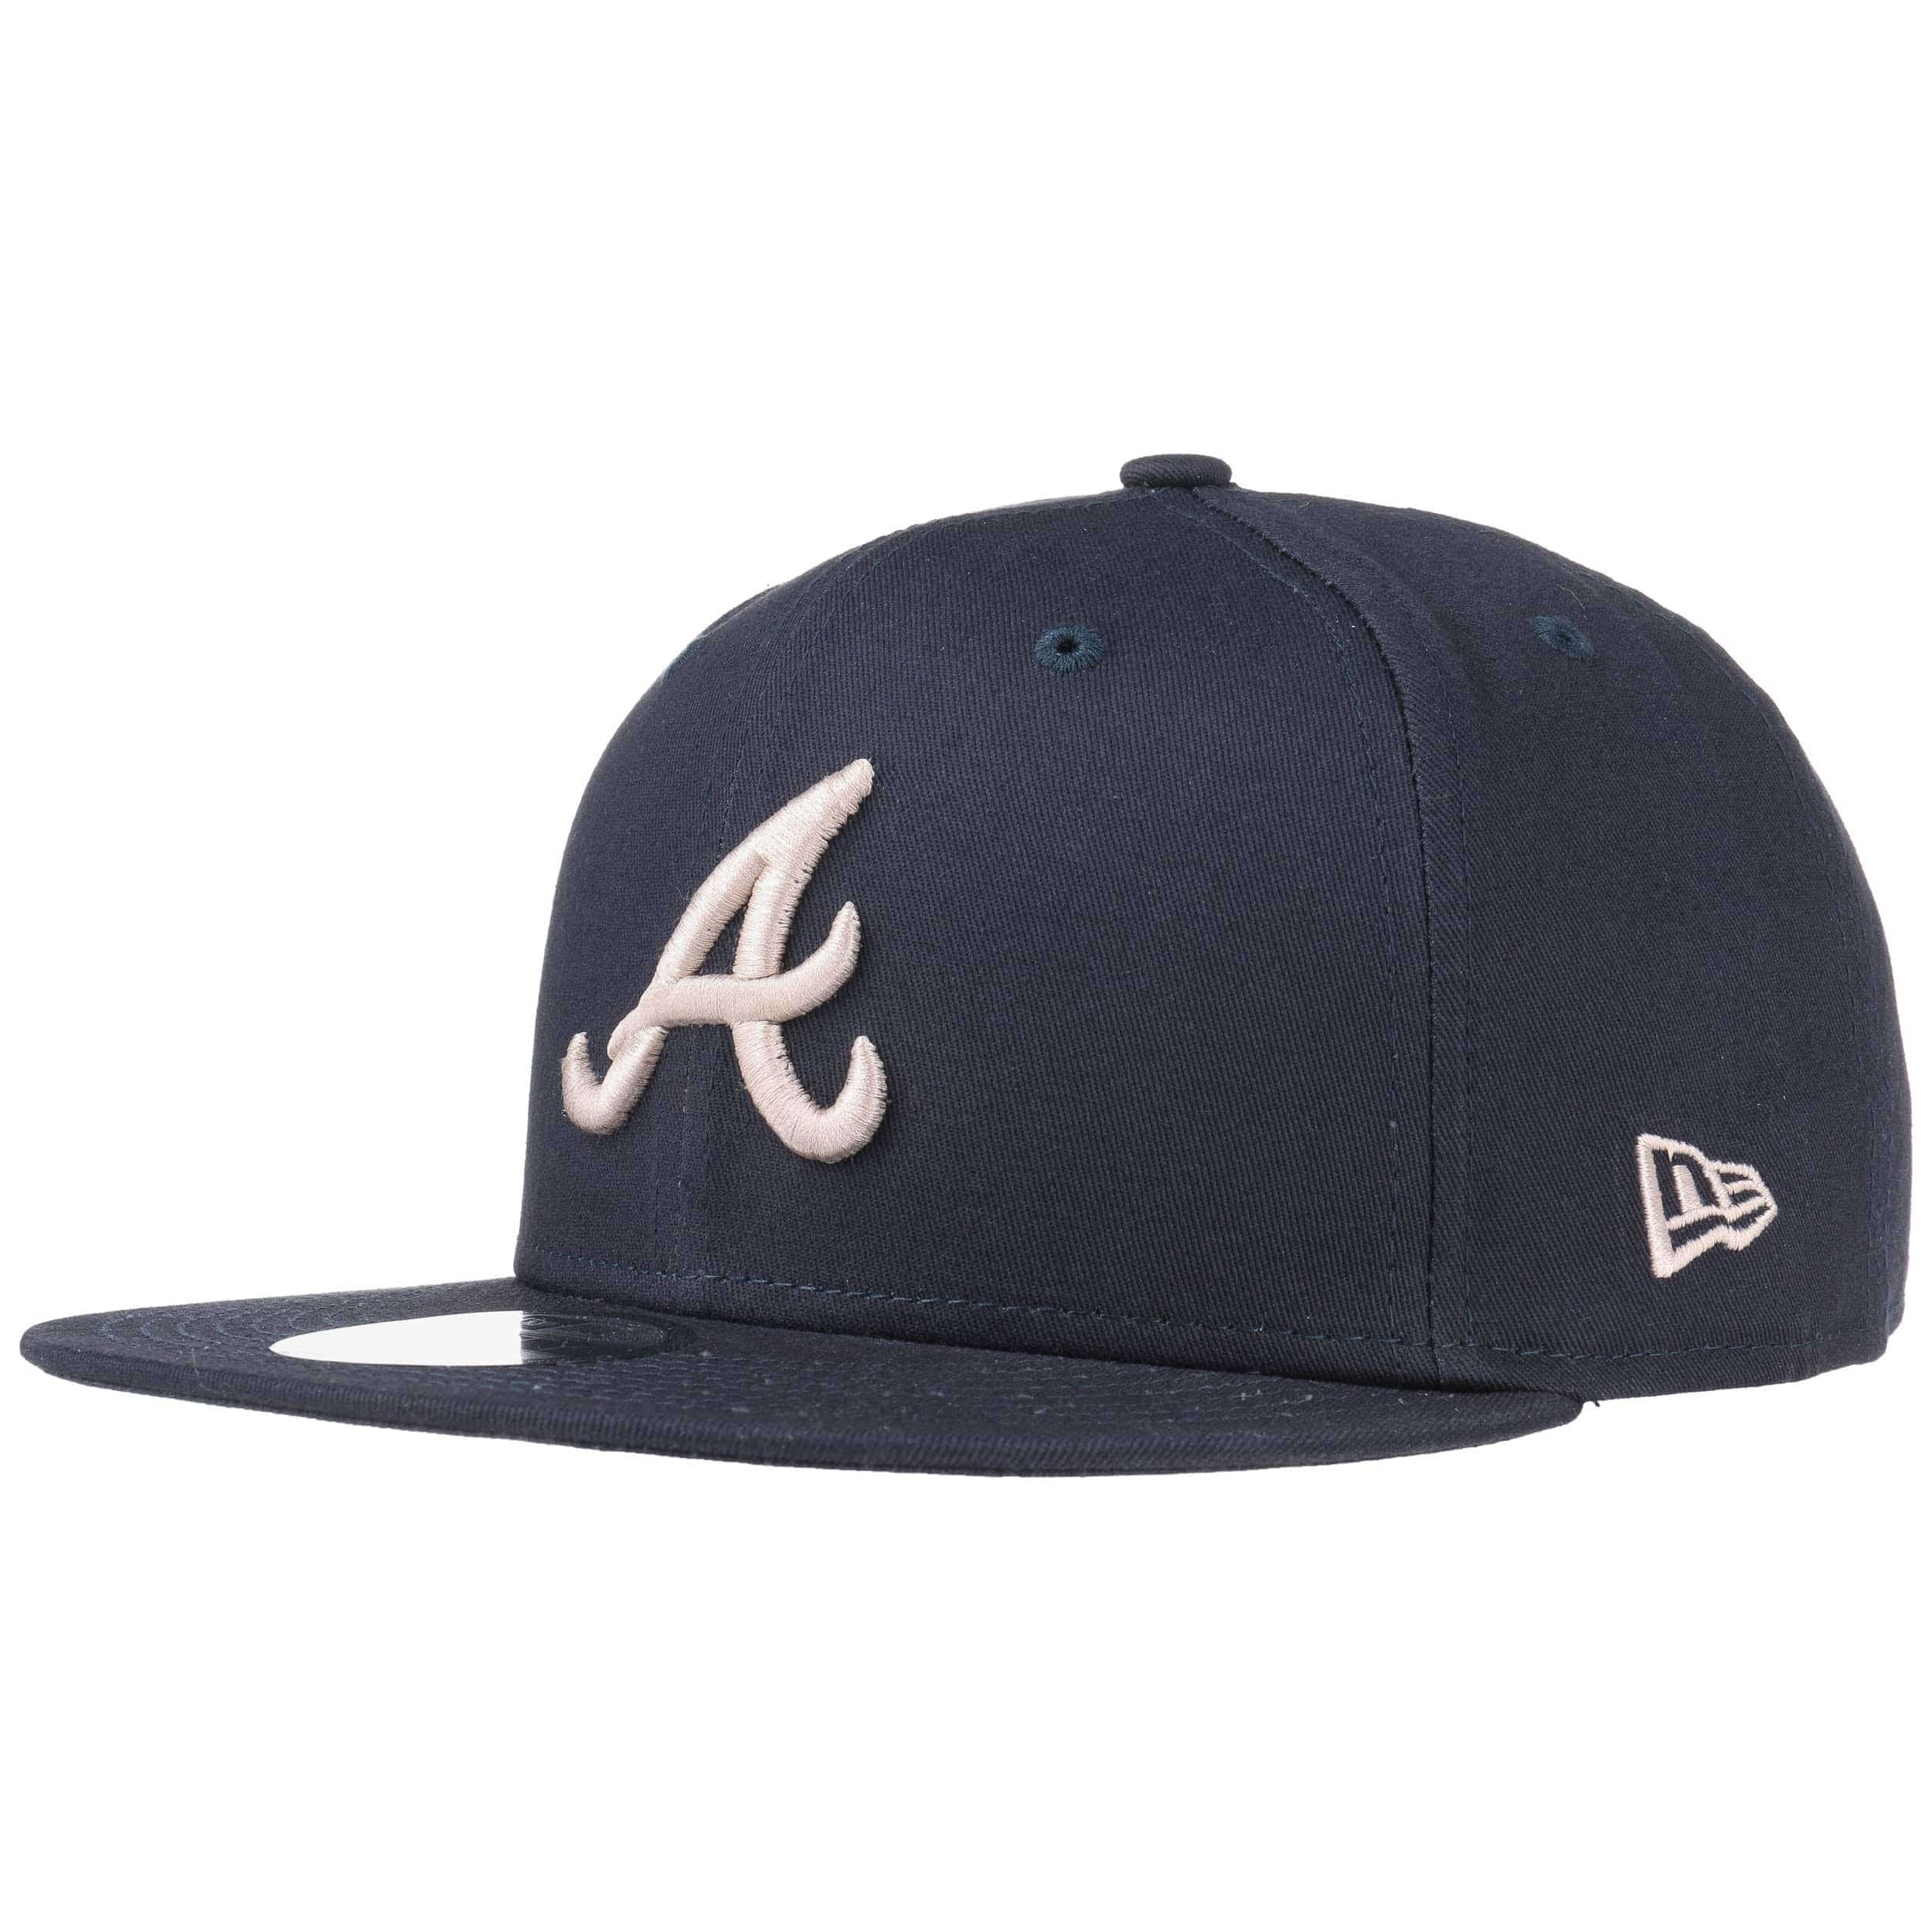 ... ebay 9fifty league atlanta braves cap by new era 06443 8a1a5 ... 01162594470